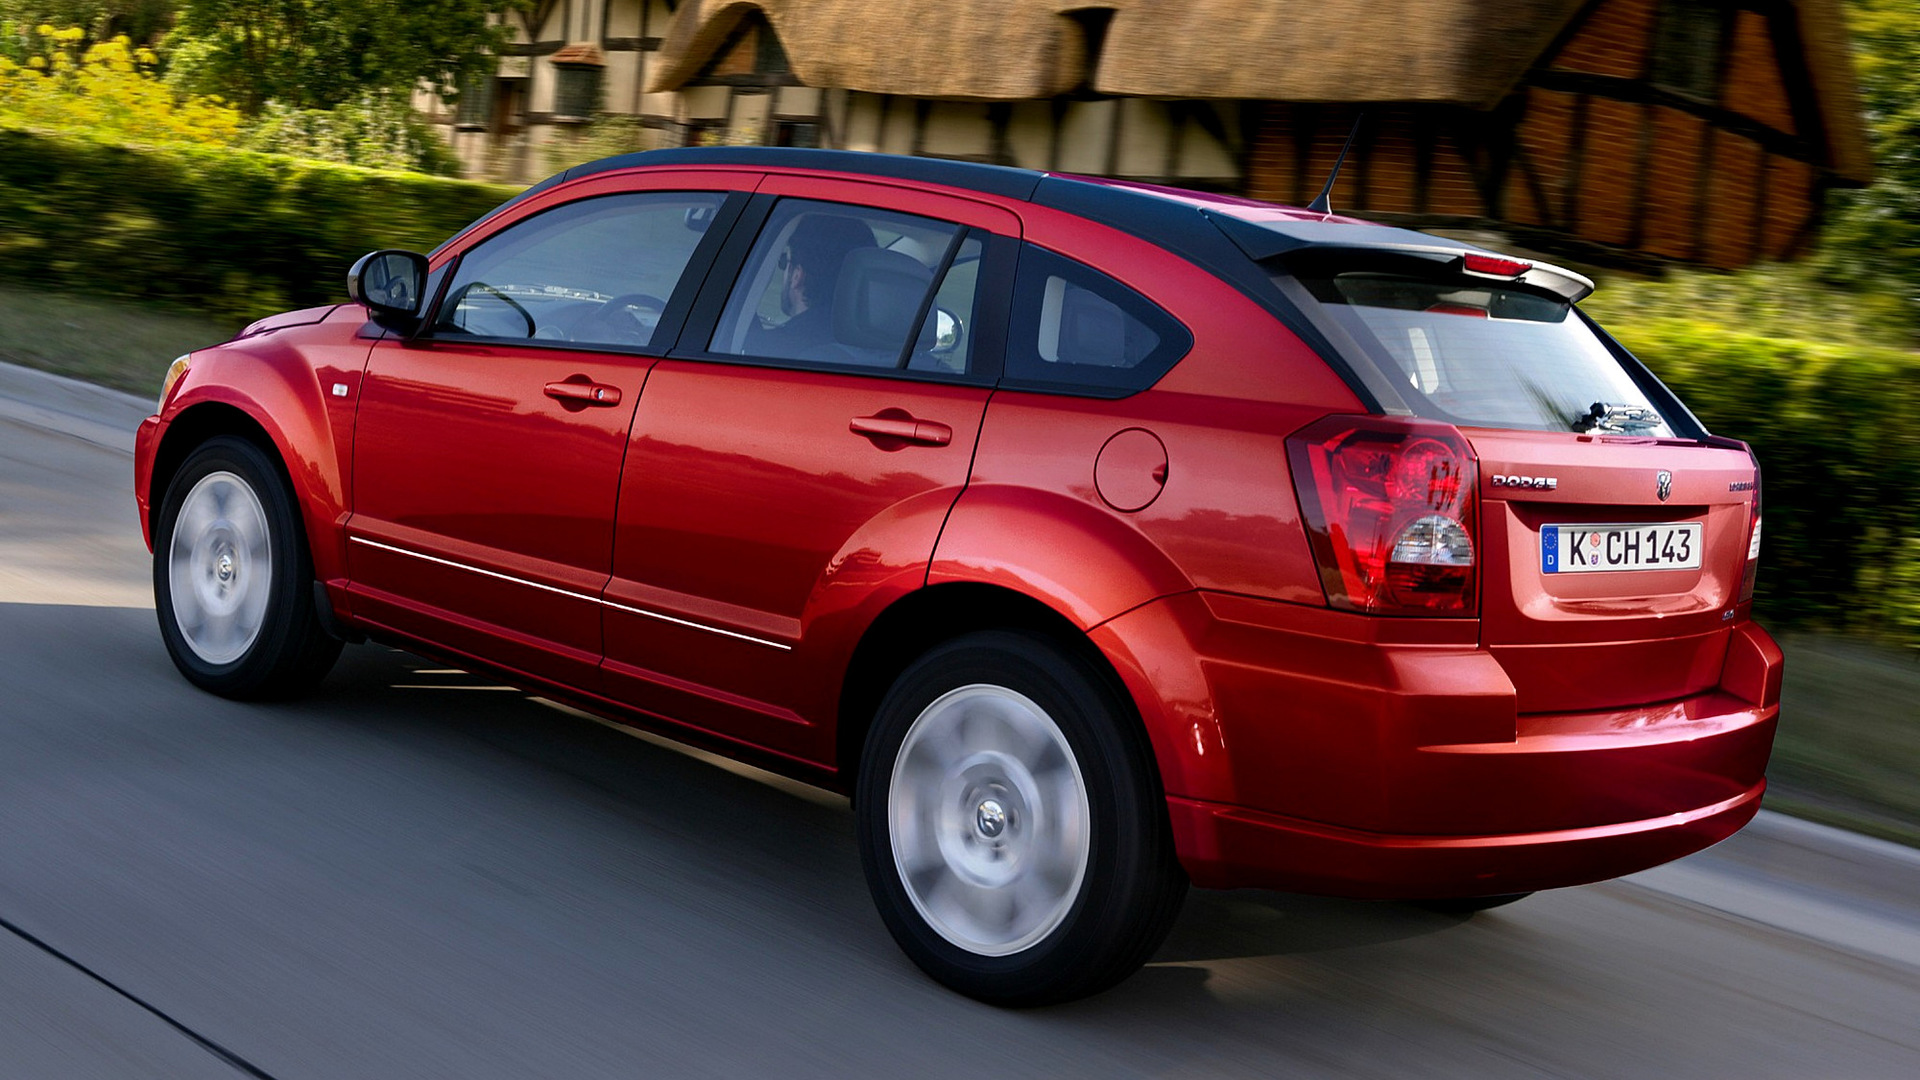 dodge caliber sxt 2009 eu wallpapers and hd images car. Black Bedroom Furniture Sets. Home Design Ideas